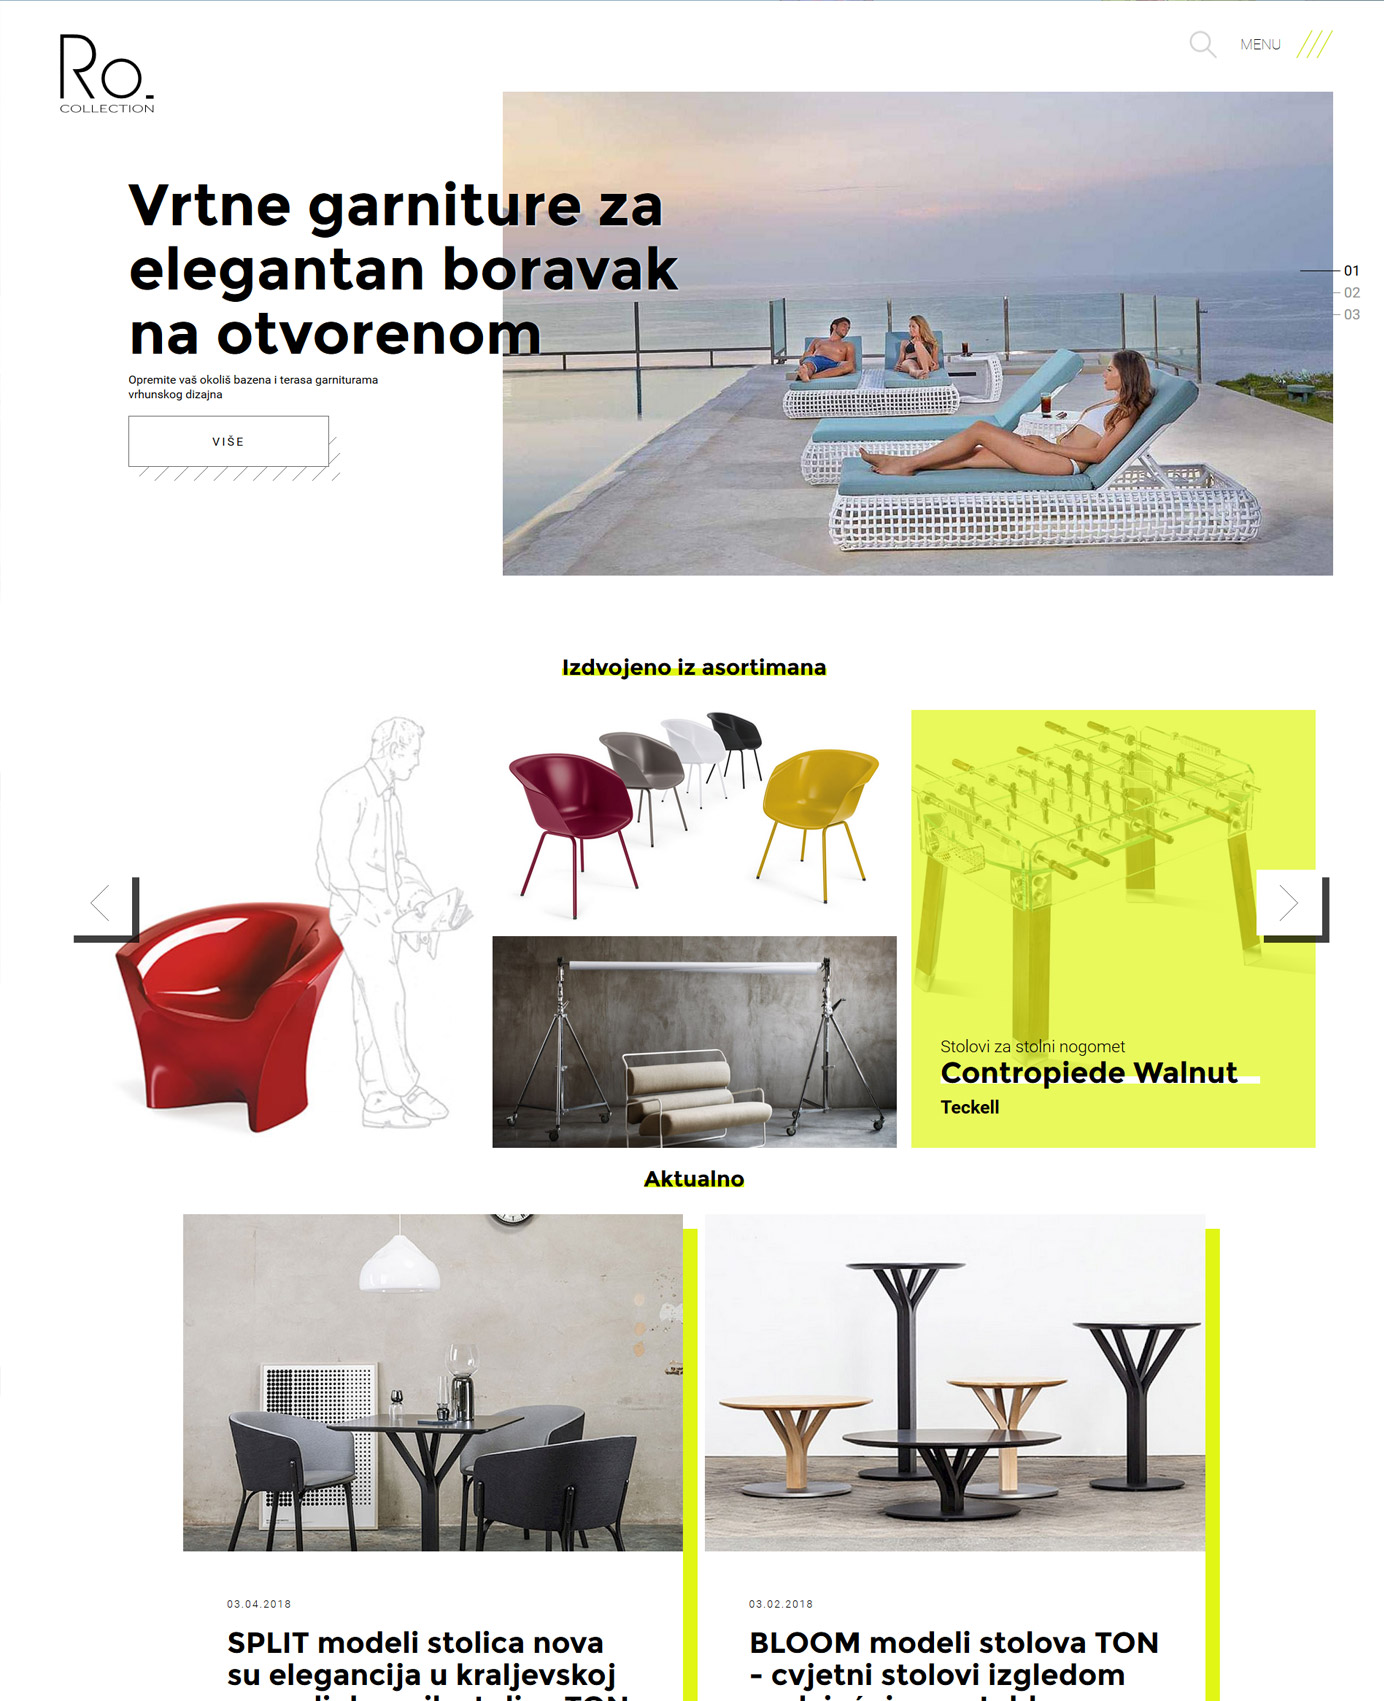 Dizajn i izrada web stranice - Ro. Collection - Bernardić studio